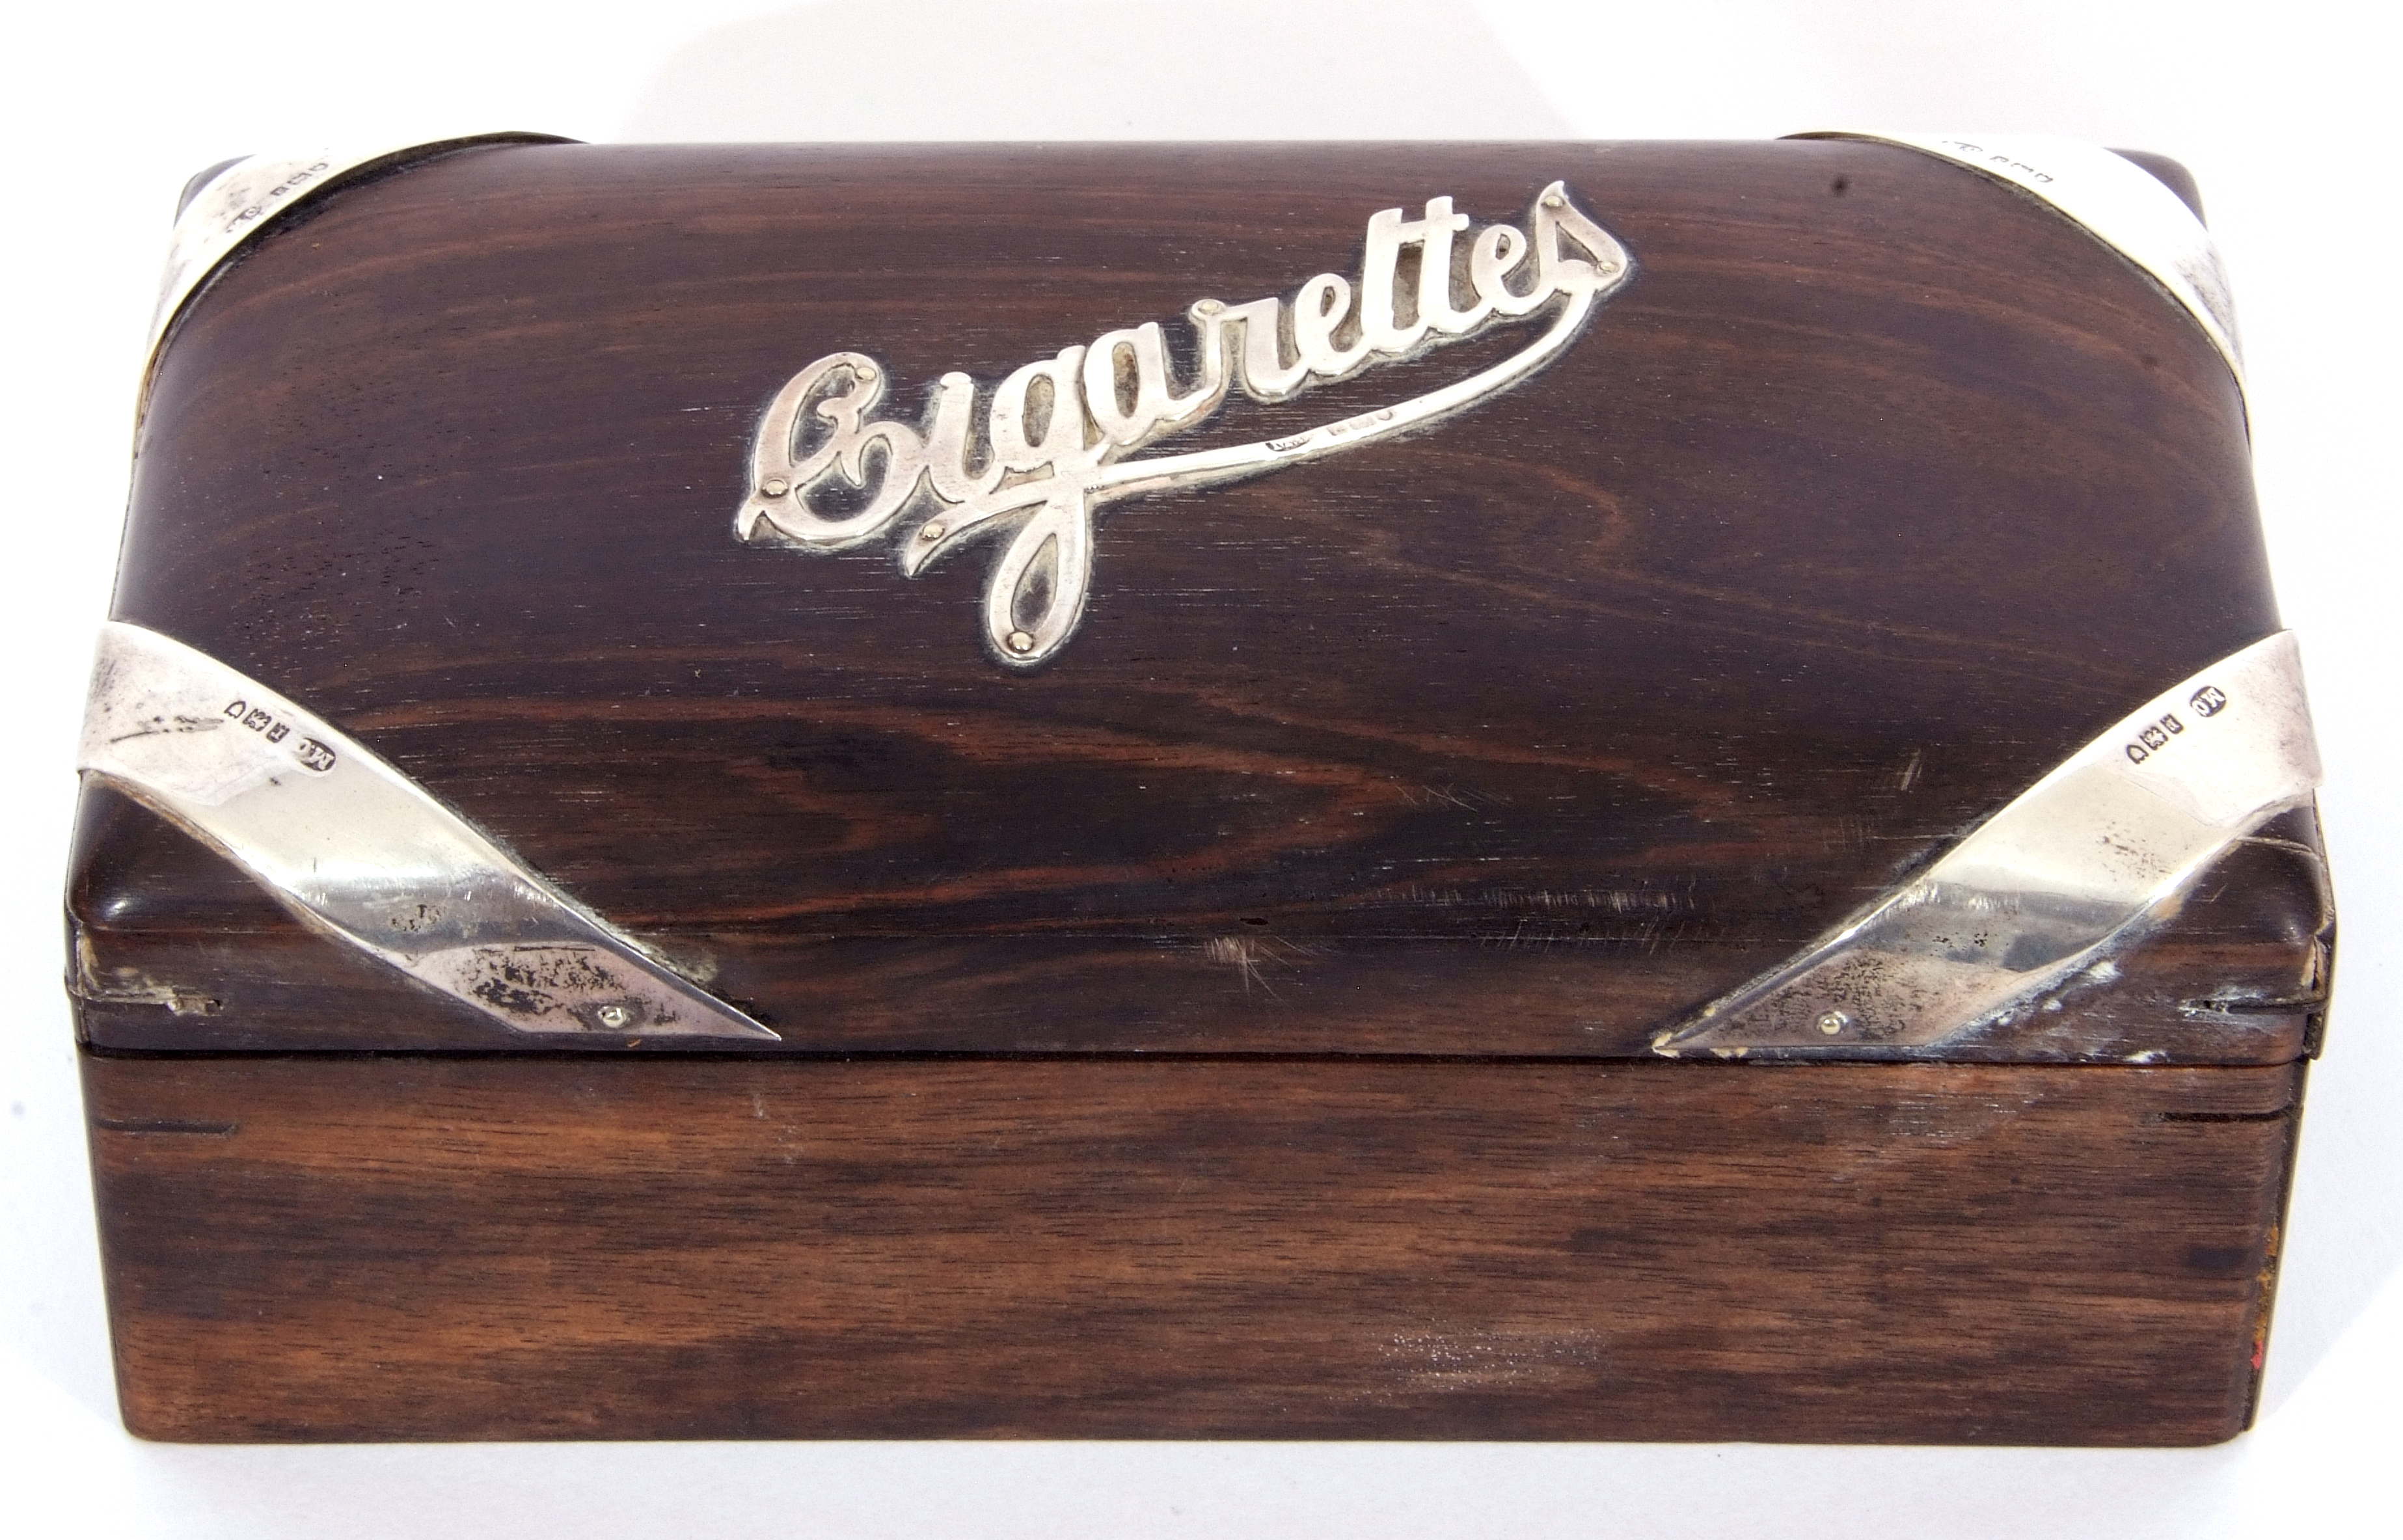 Hardwood and silver mounted table cigarette box of rectangular domed form, the centre applied with